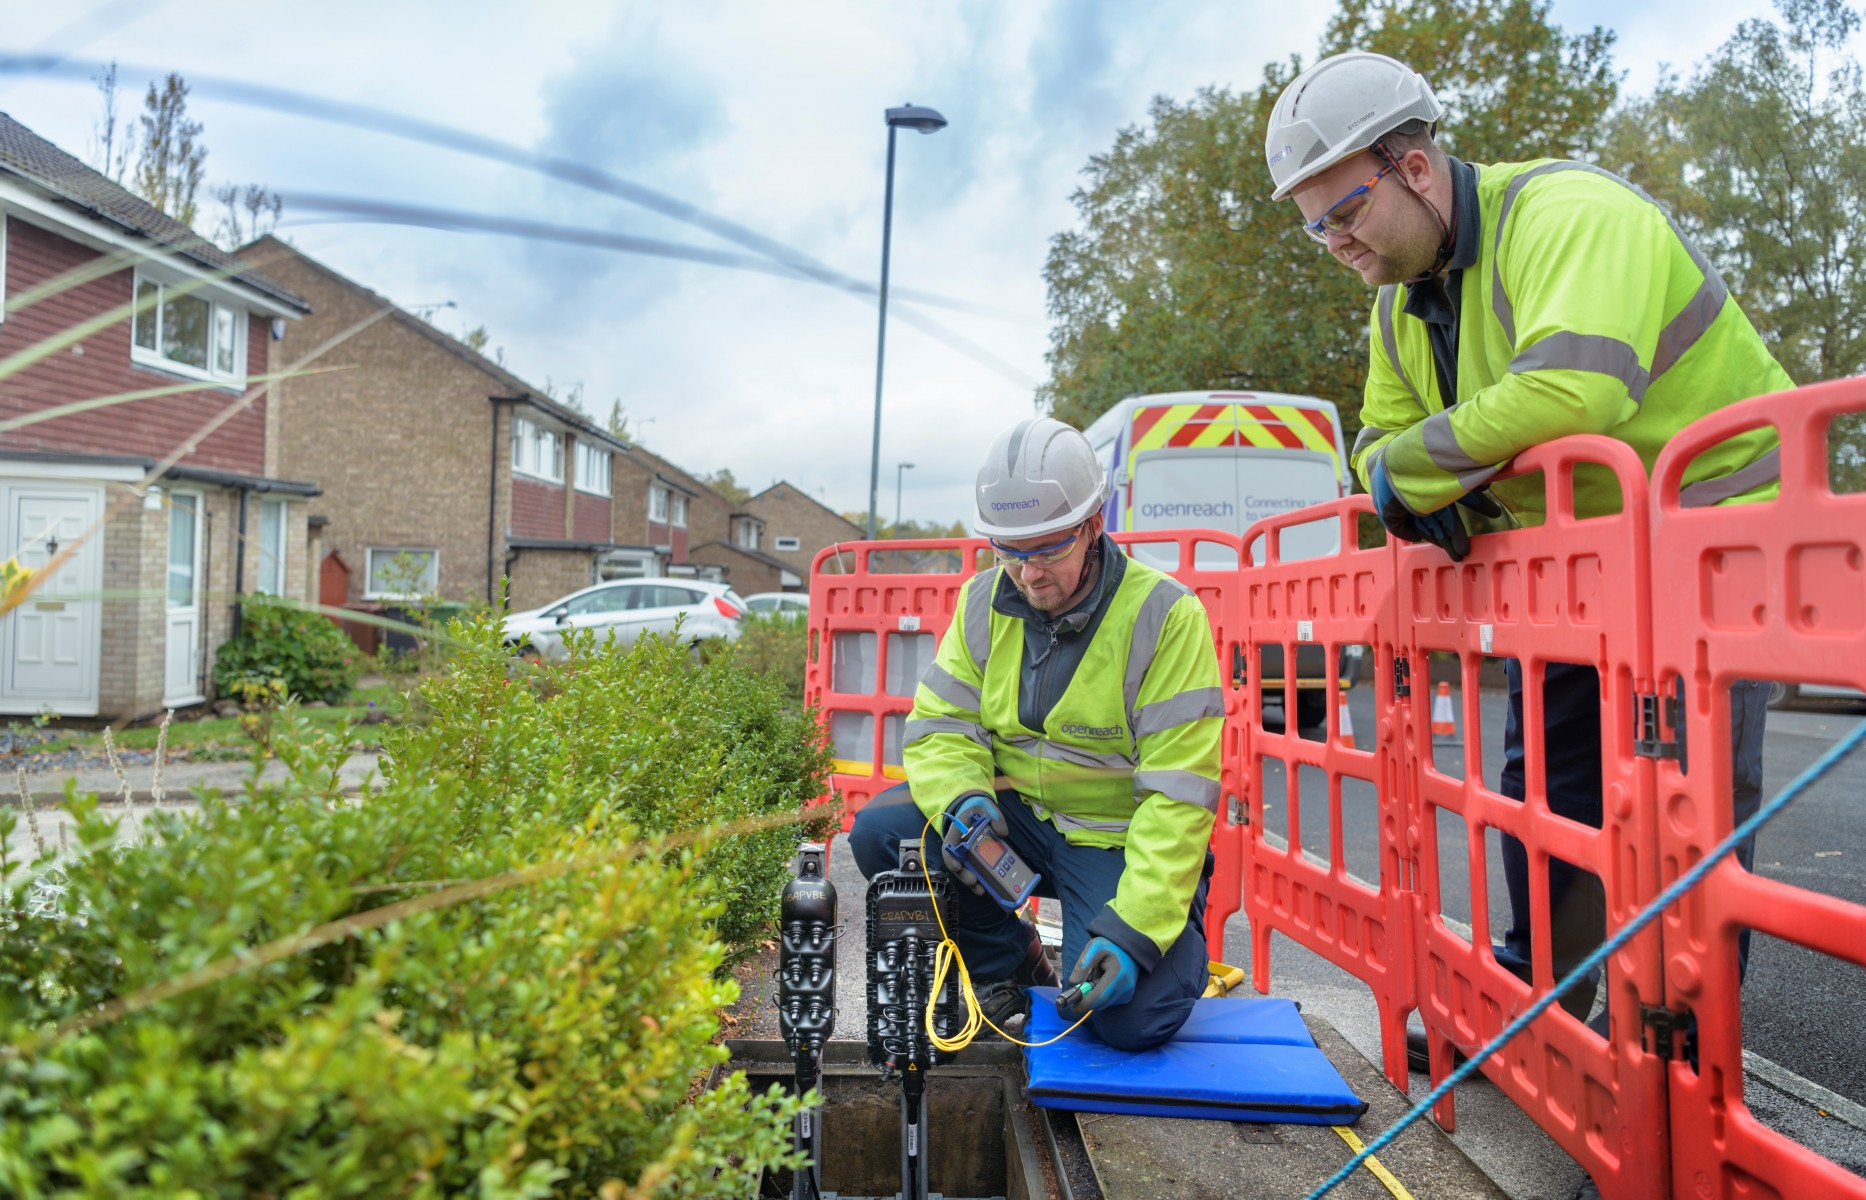 Openreach Engineer FTTP